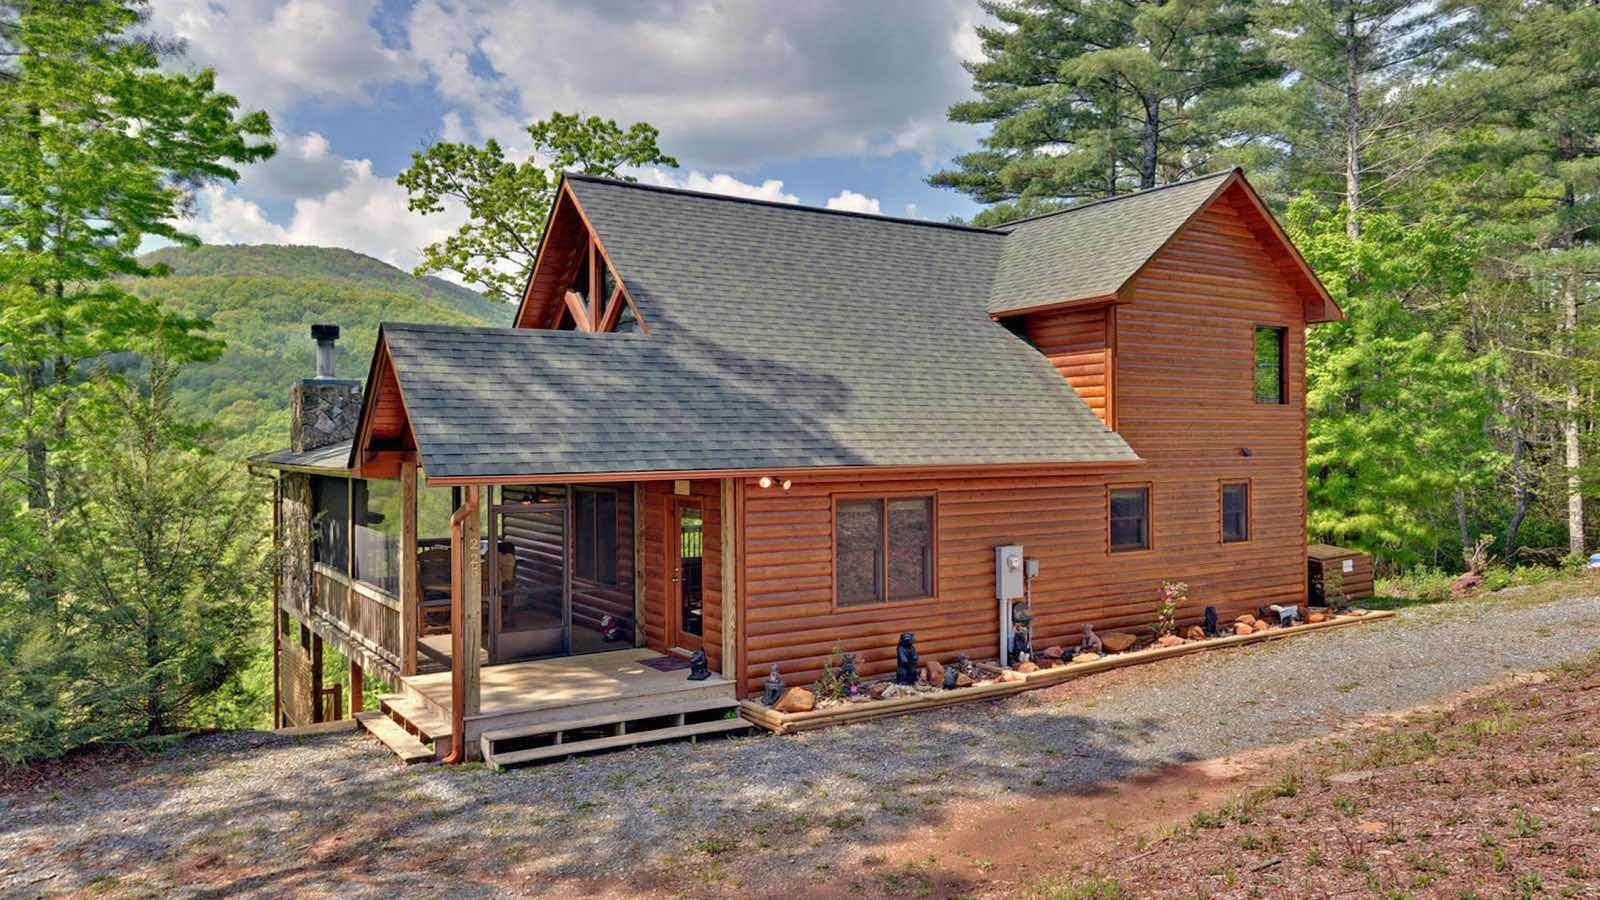 North georgia mountain cabin rentals for Large cabin rentals north georgia